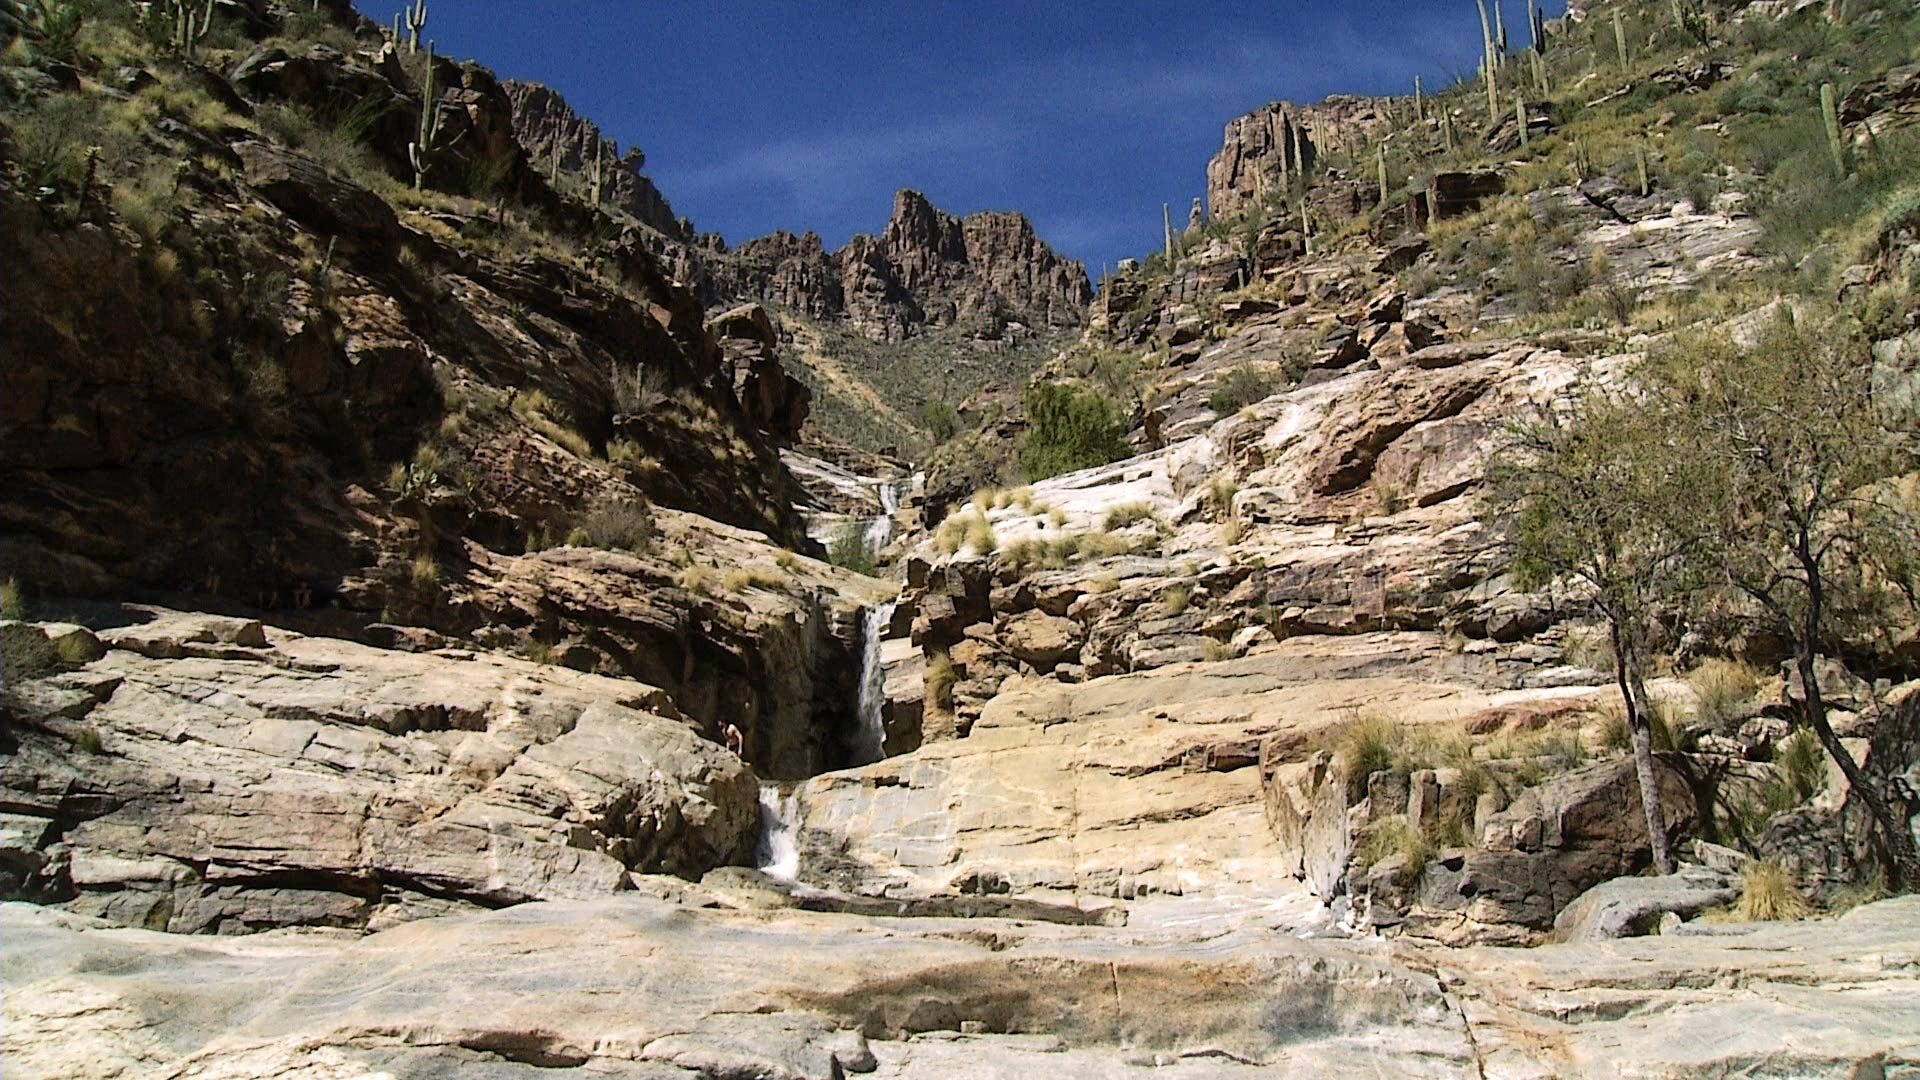 Looking up at Seven Falls, in the Sabino Canyon Recreation Area.